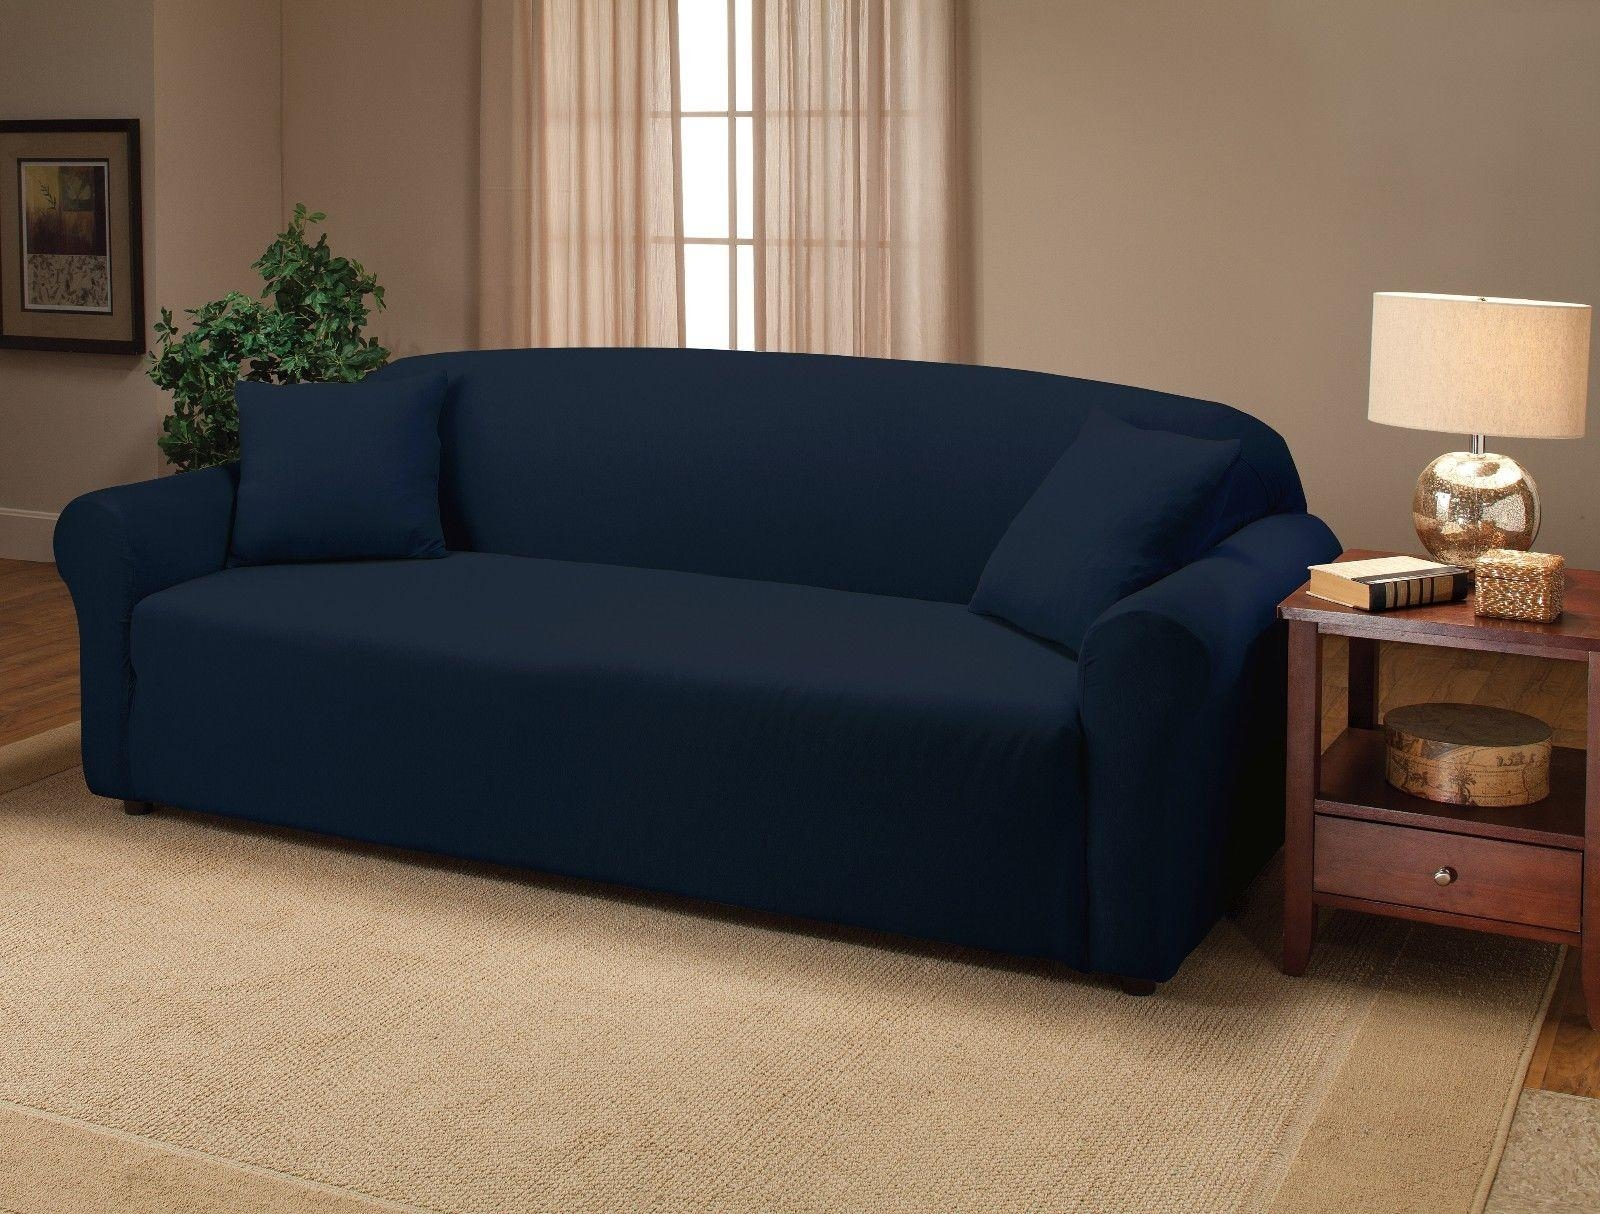 Navy Blue Sofa Slipcovers | Tehranmix Decoration regarding Navy Blue Slipcovers